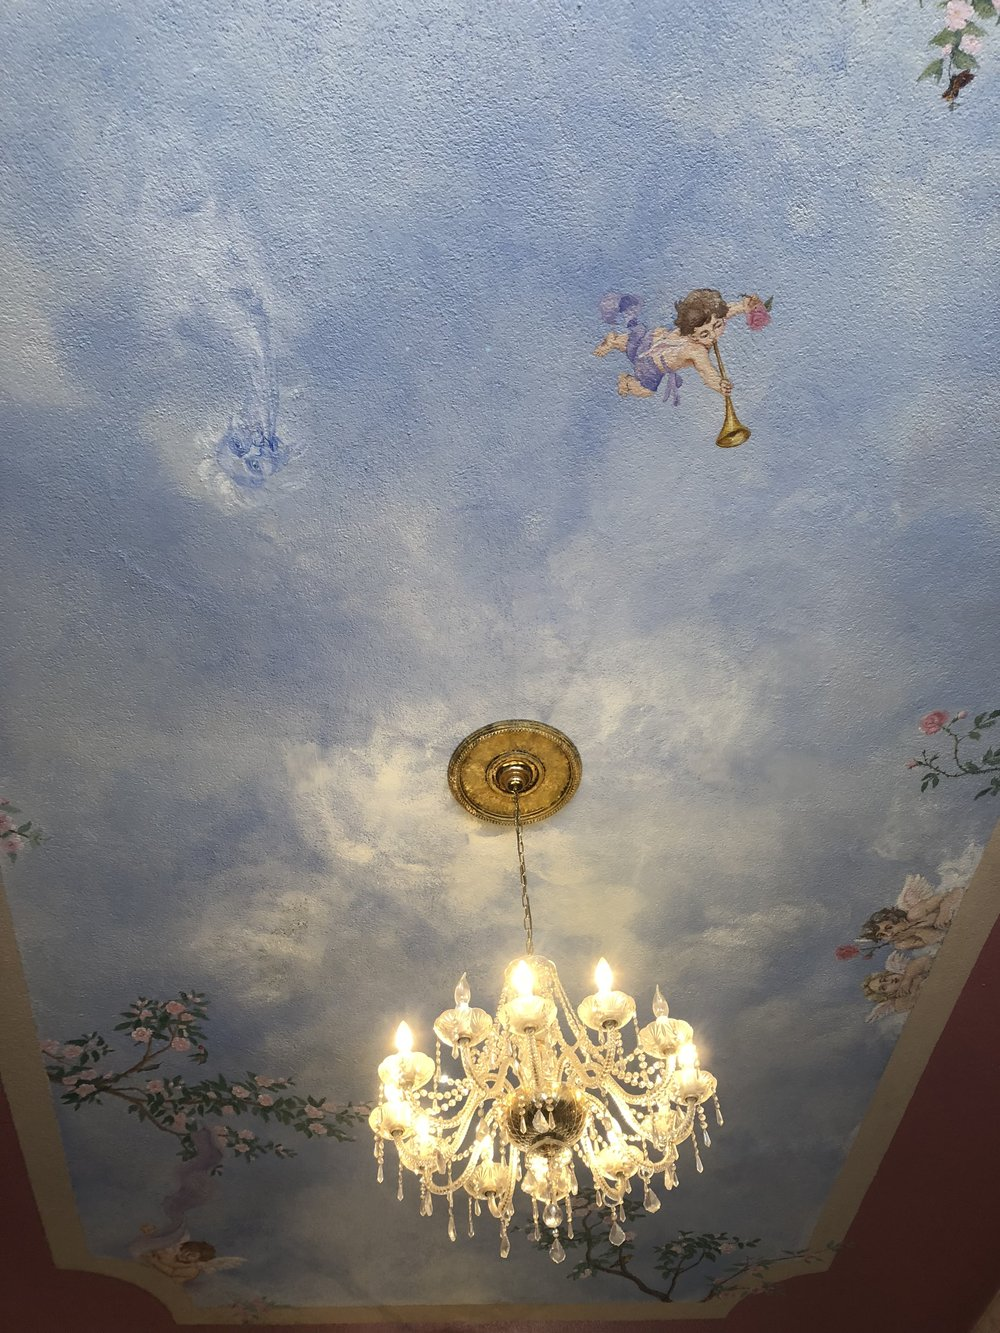 The rococo inspired ceiling of Elise's Tea Room in Long Beach California.